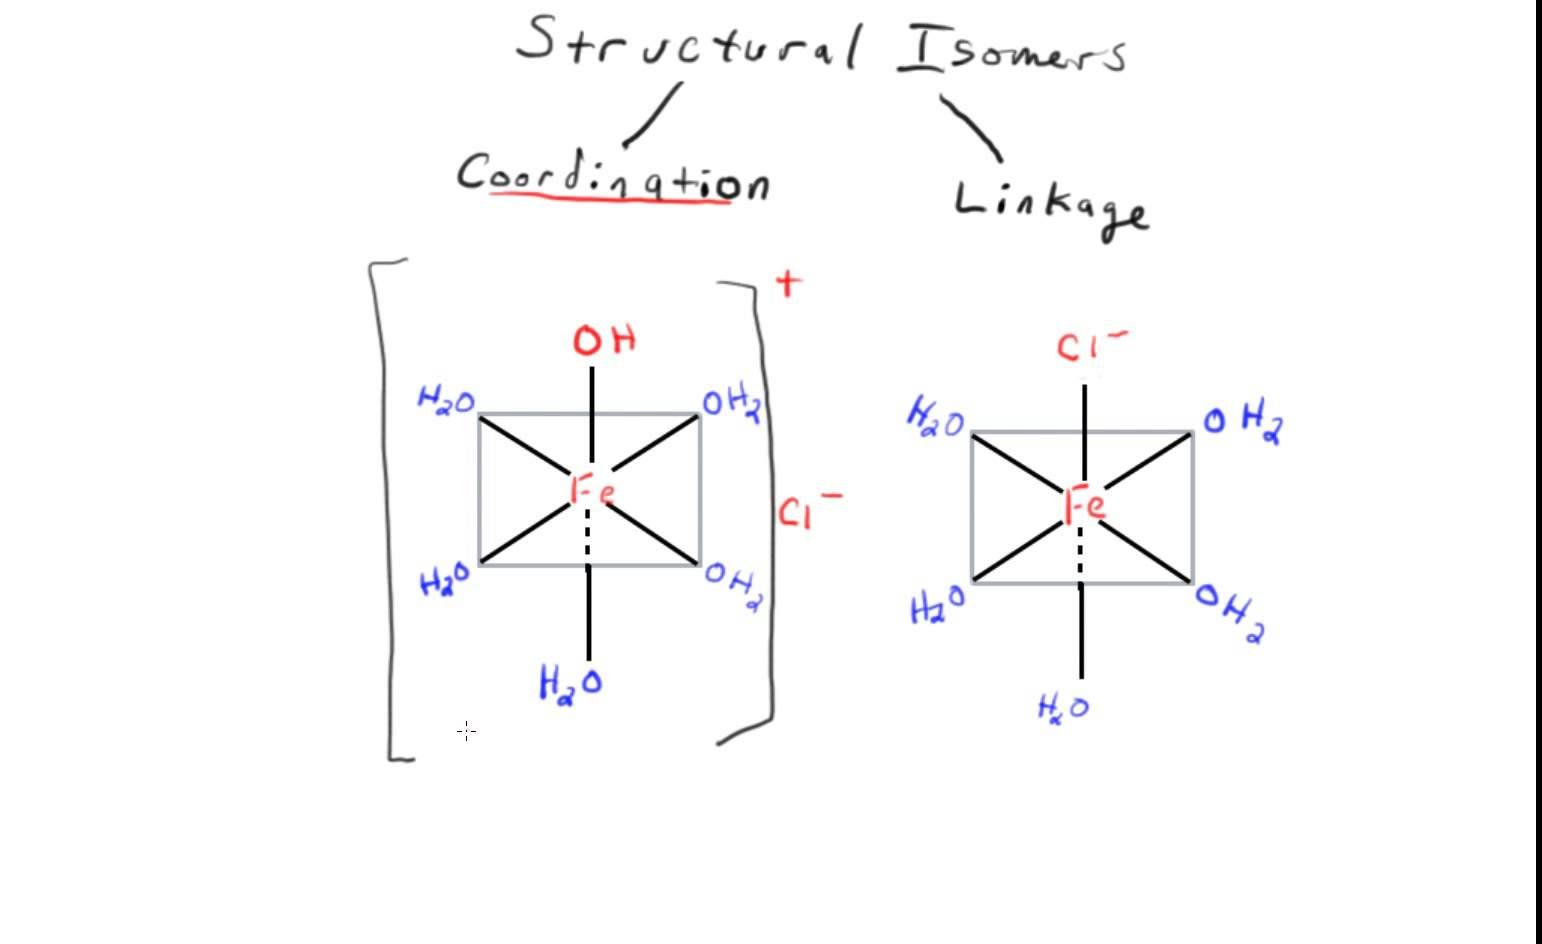 medium resolution of structural isomers of a complex ion chemistry line chart